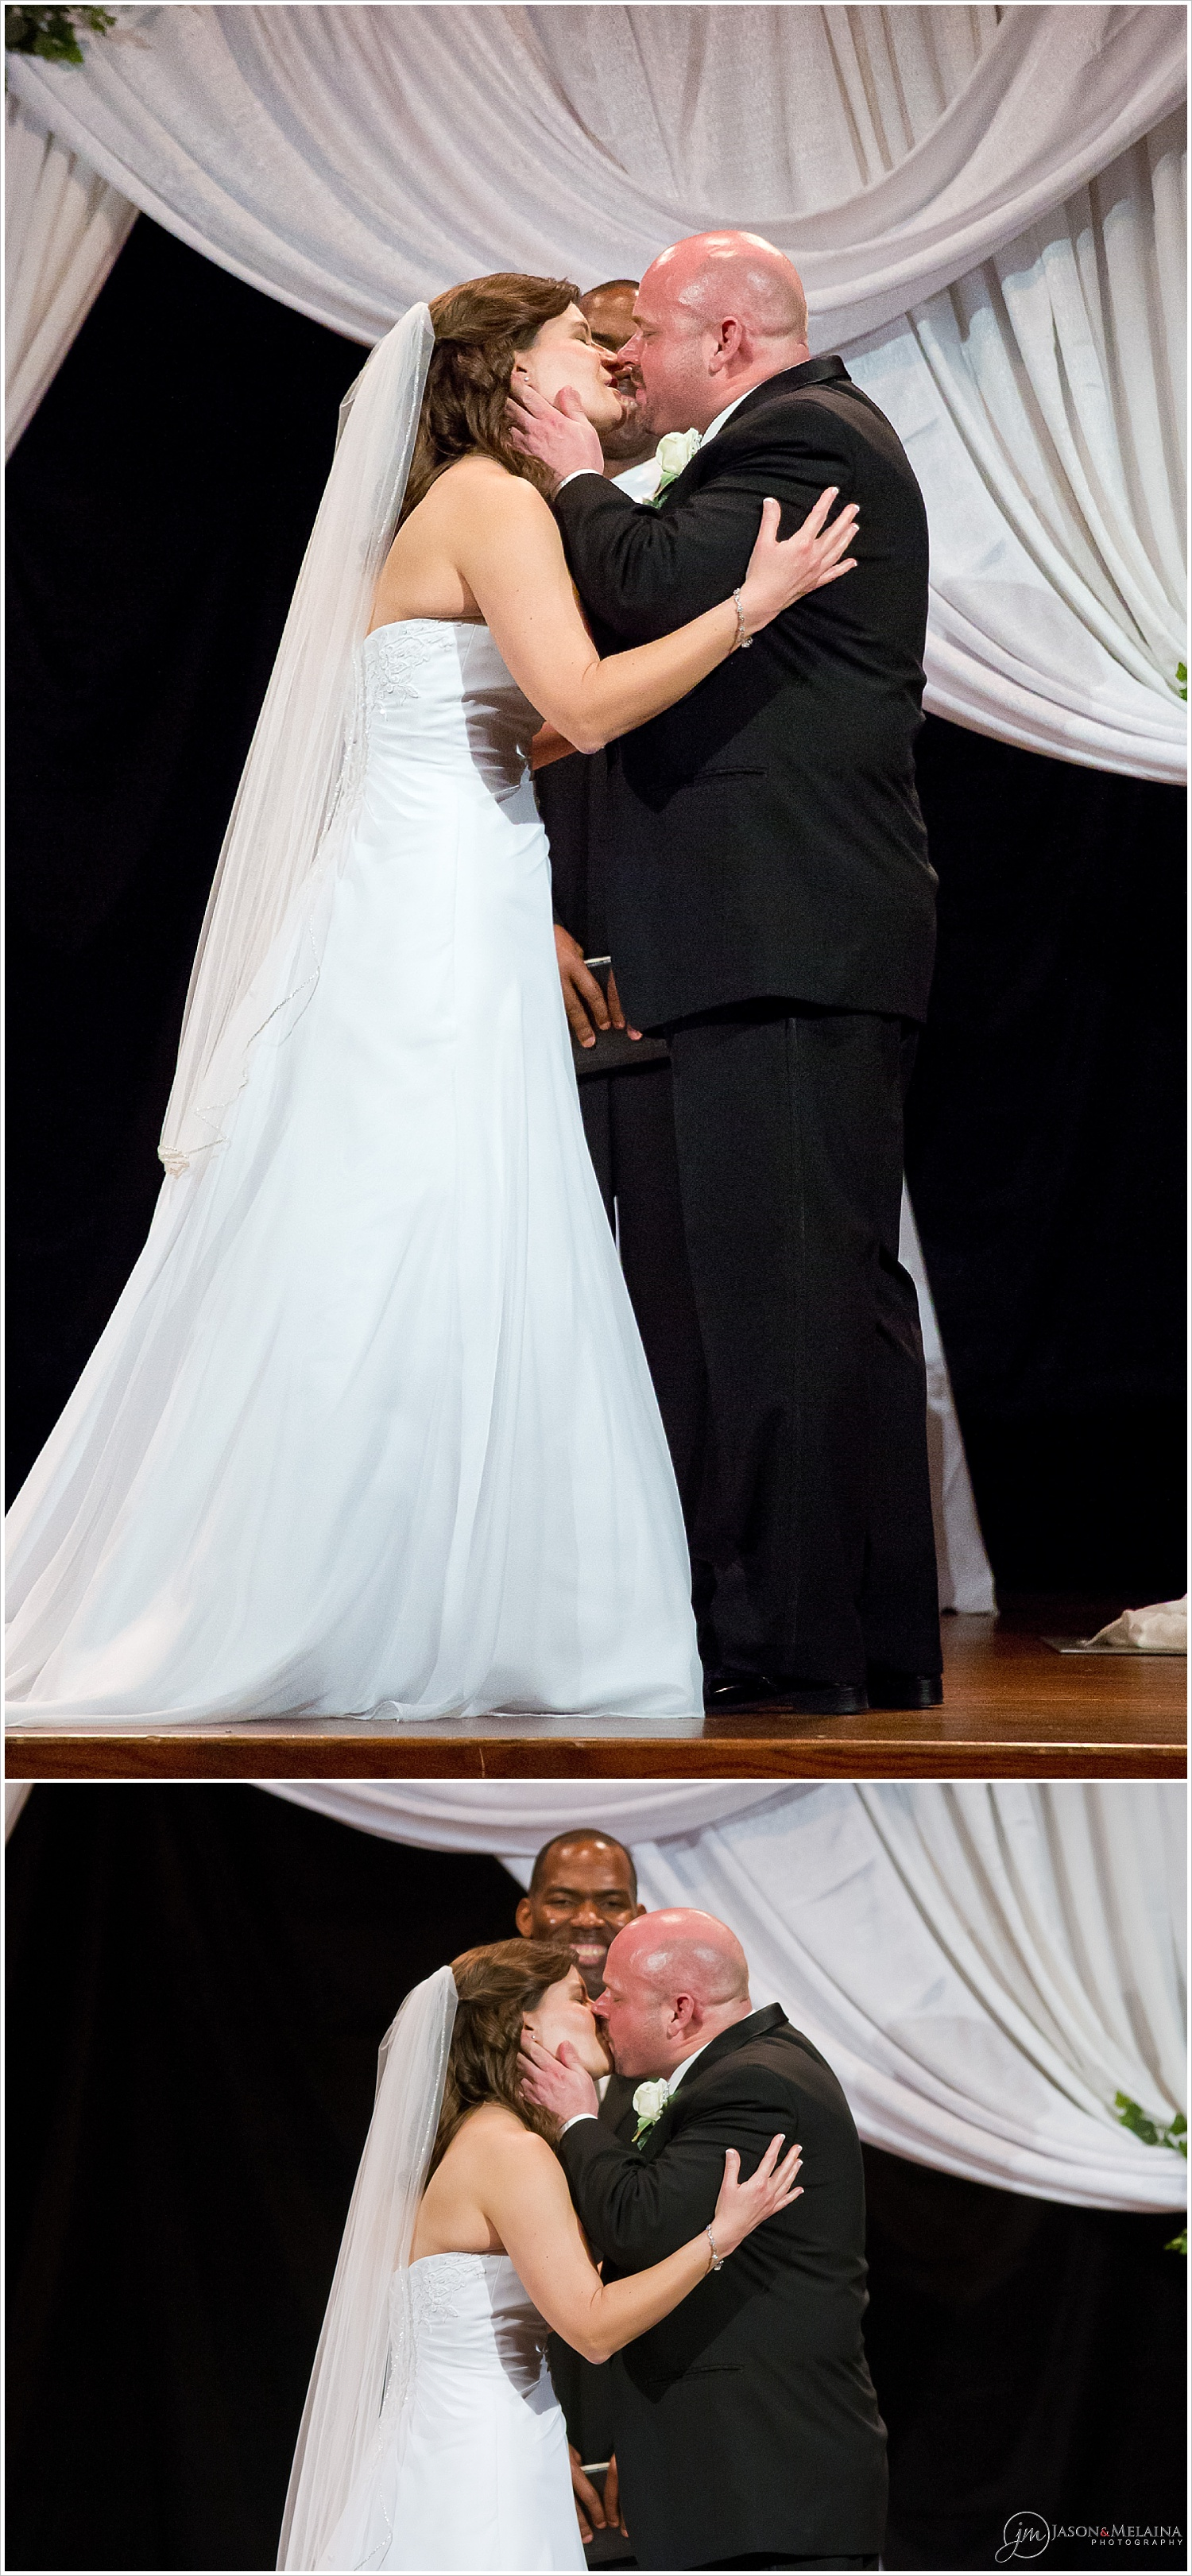 Bride and groom kiss during wedding ceremony at Antioch Community Church in Waco, Texas